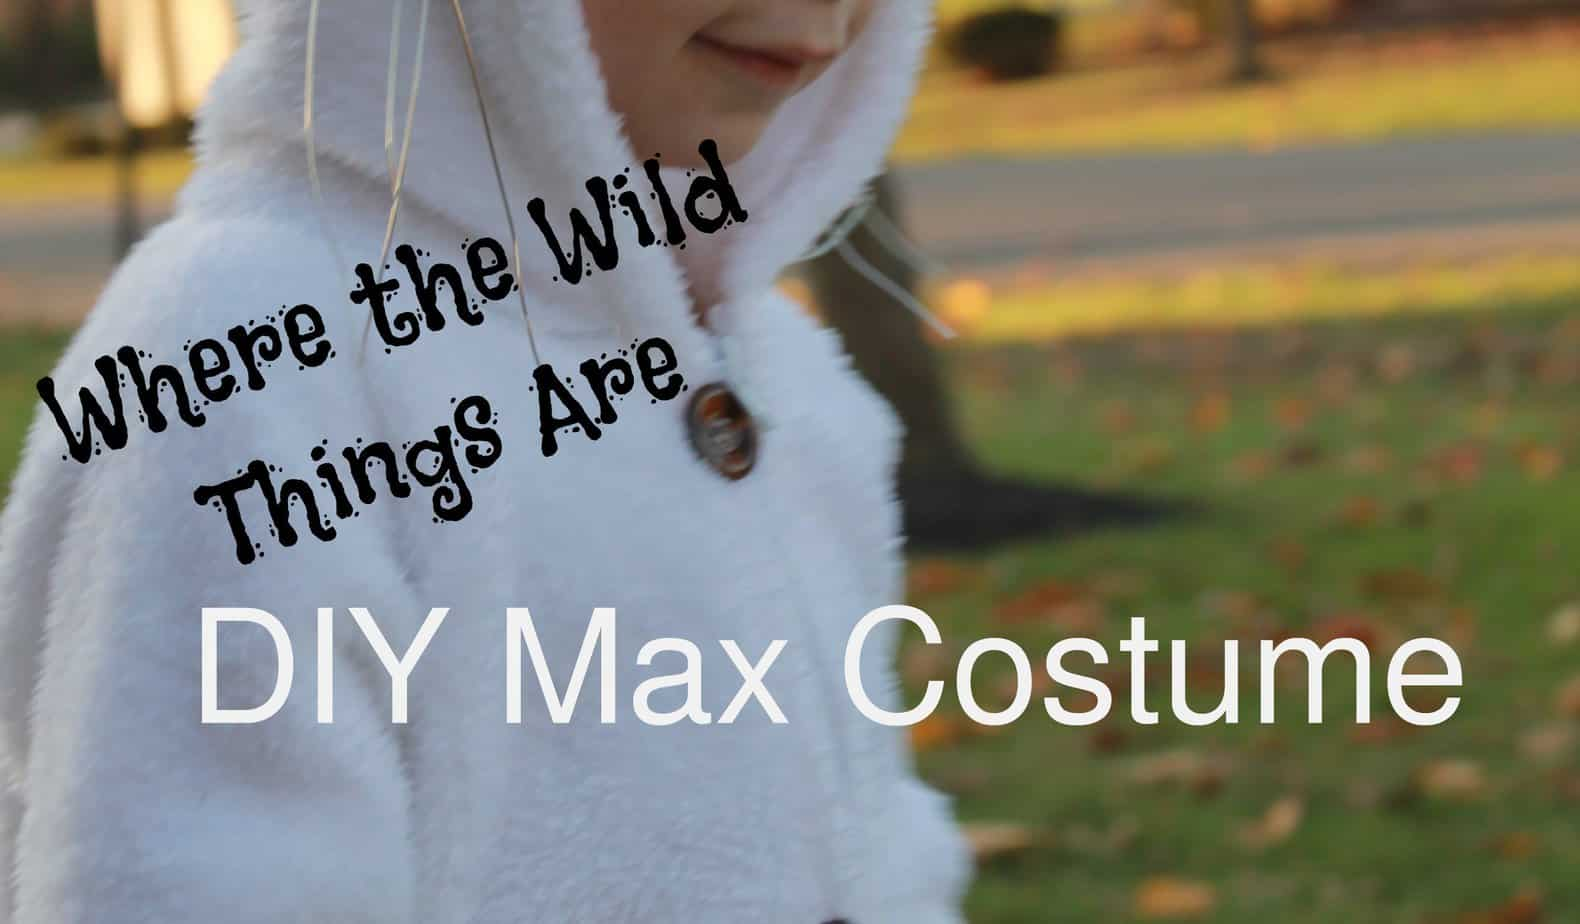 Fullsize Of Where The Wild Things Are Costume